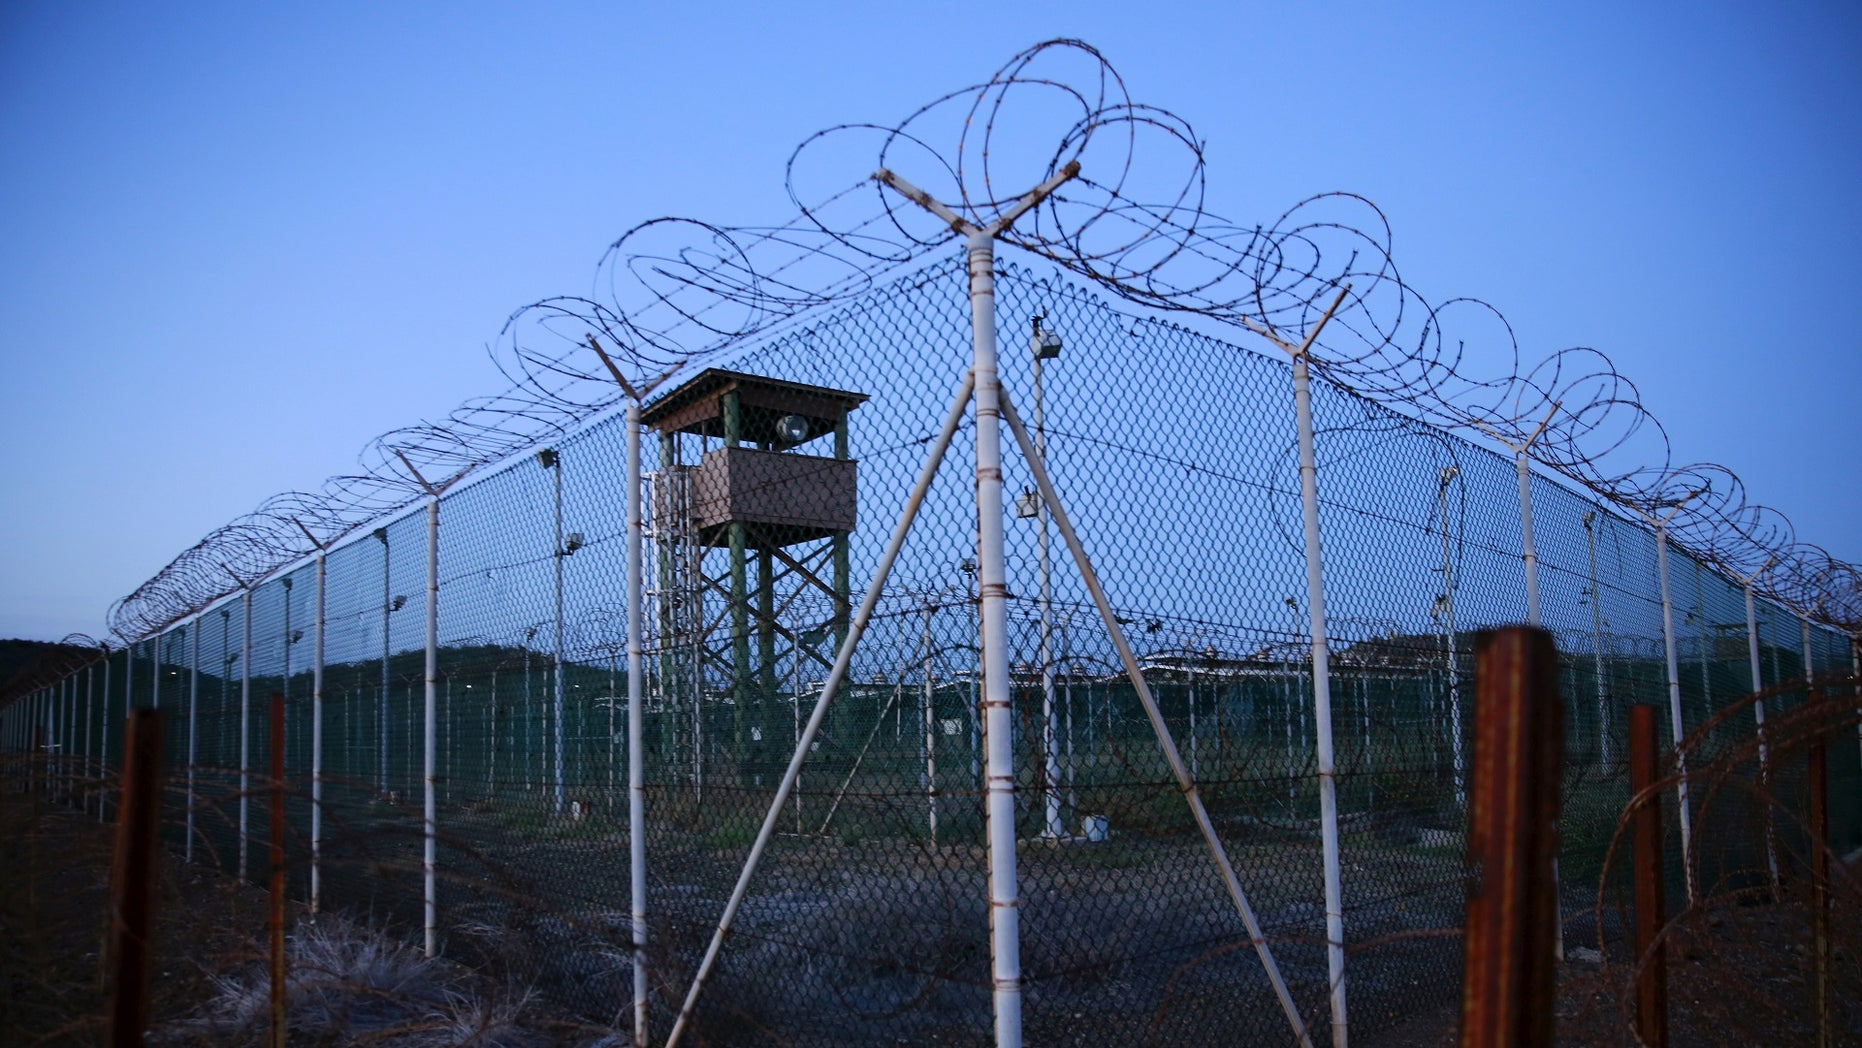 FILE PHOTO -  Chain link fence and concertina wire surrounds a deserted guard tower within Joint Task Force Guantanamo's Camp Delta at the U.S. Naval Base in Guantanamo Bay, Cuba March 21, 2016.  REUTERS/Lucas Jackson/File Photo     TPX IMAGES OF THE DAY      - S1AETVRIXQAA